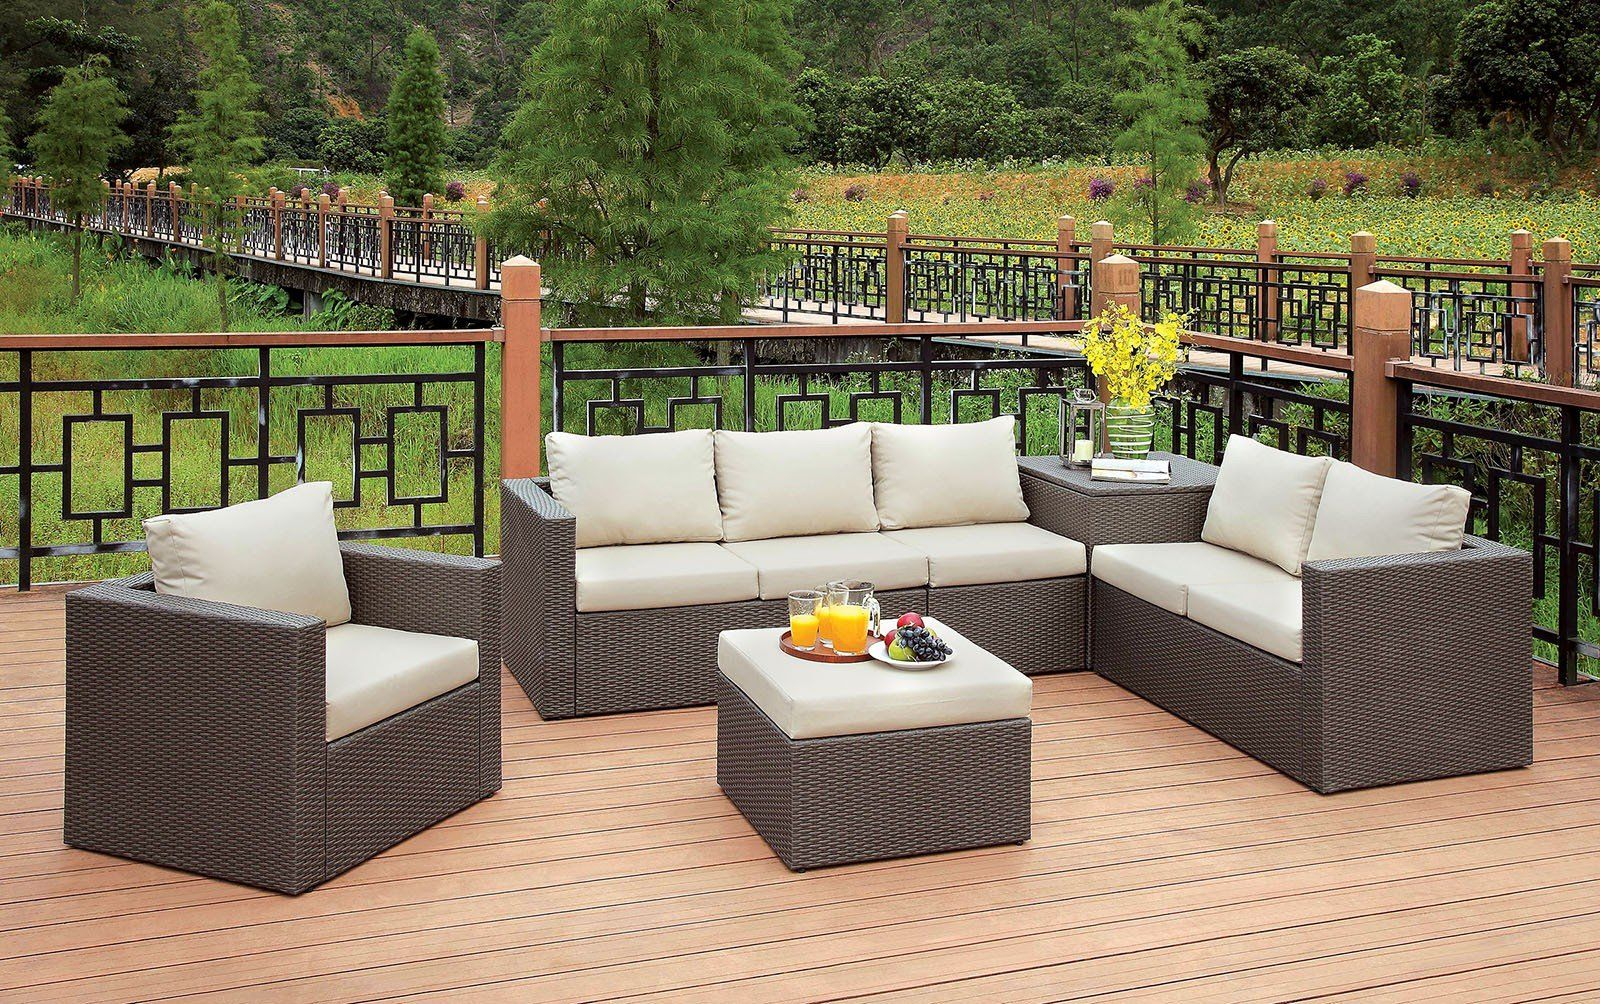 Davina Patio Sectional W Ottoman Storage Patio Decor Conversation Set Patio Outdoor Seating Set